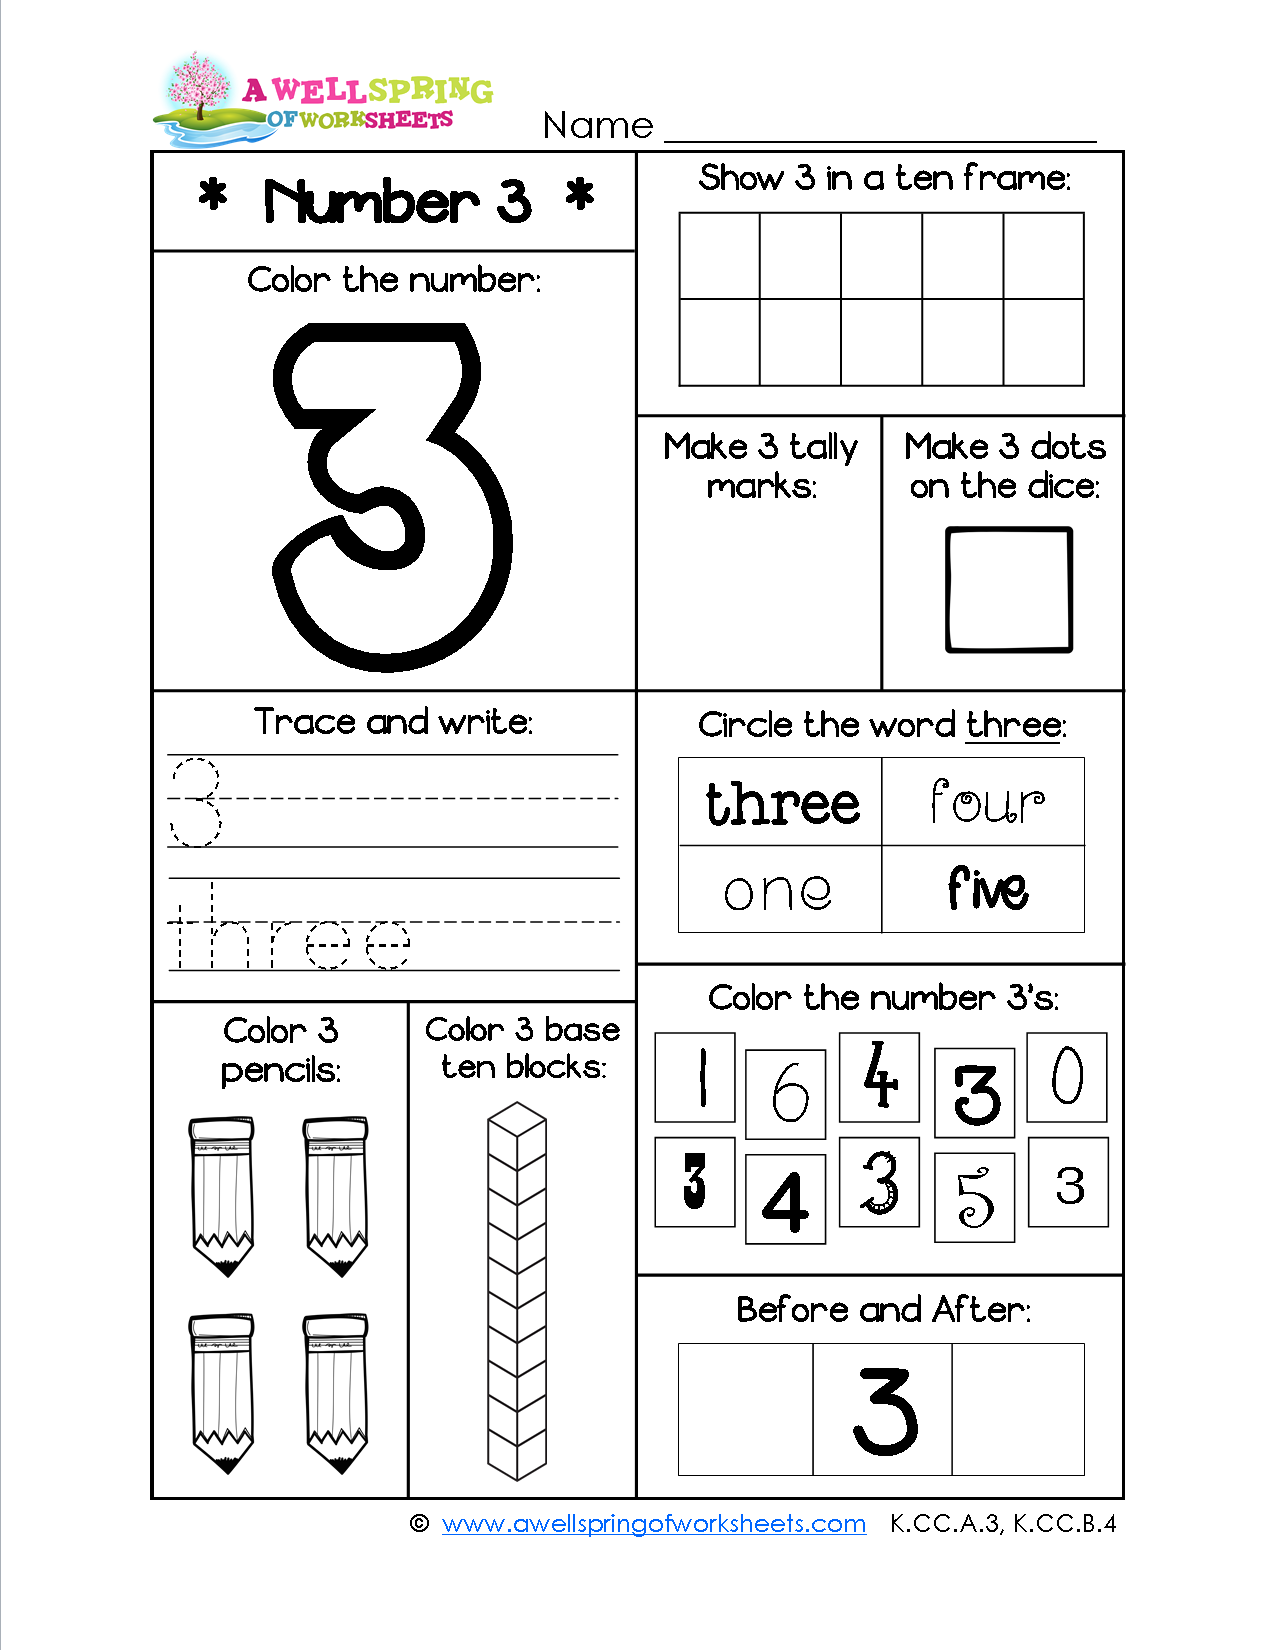 Number Worksheets There 39 S Plenty To Keep Kids Busy On